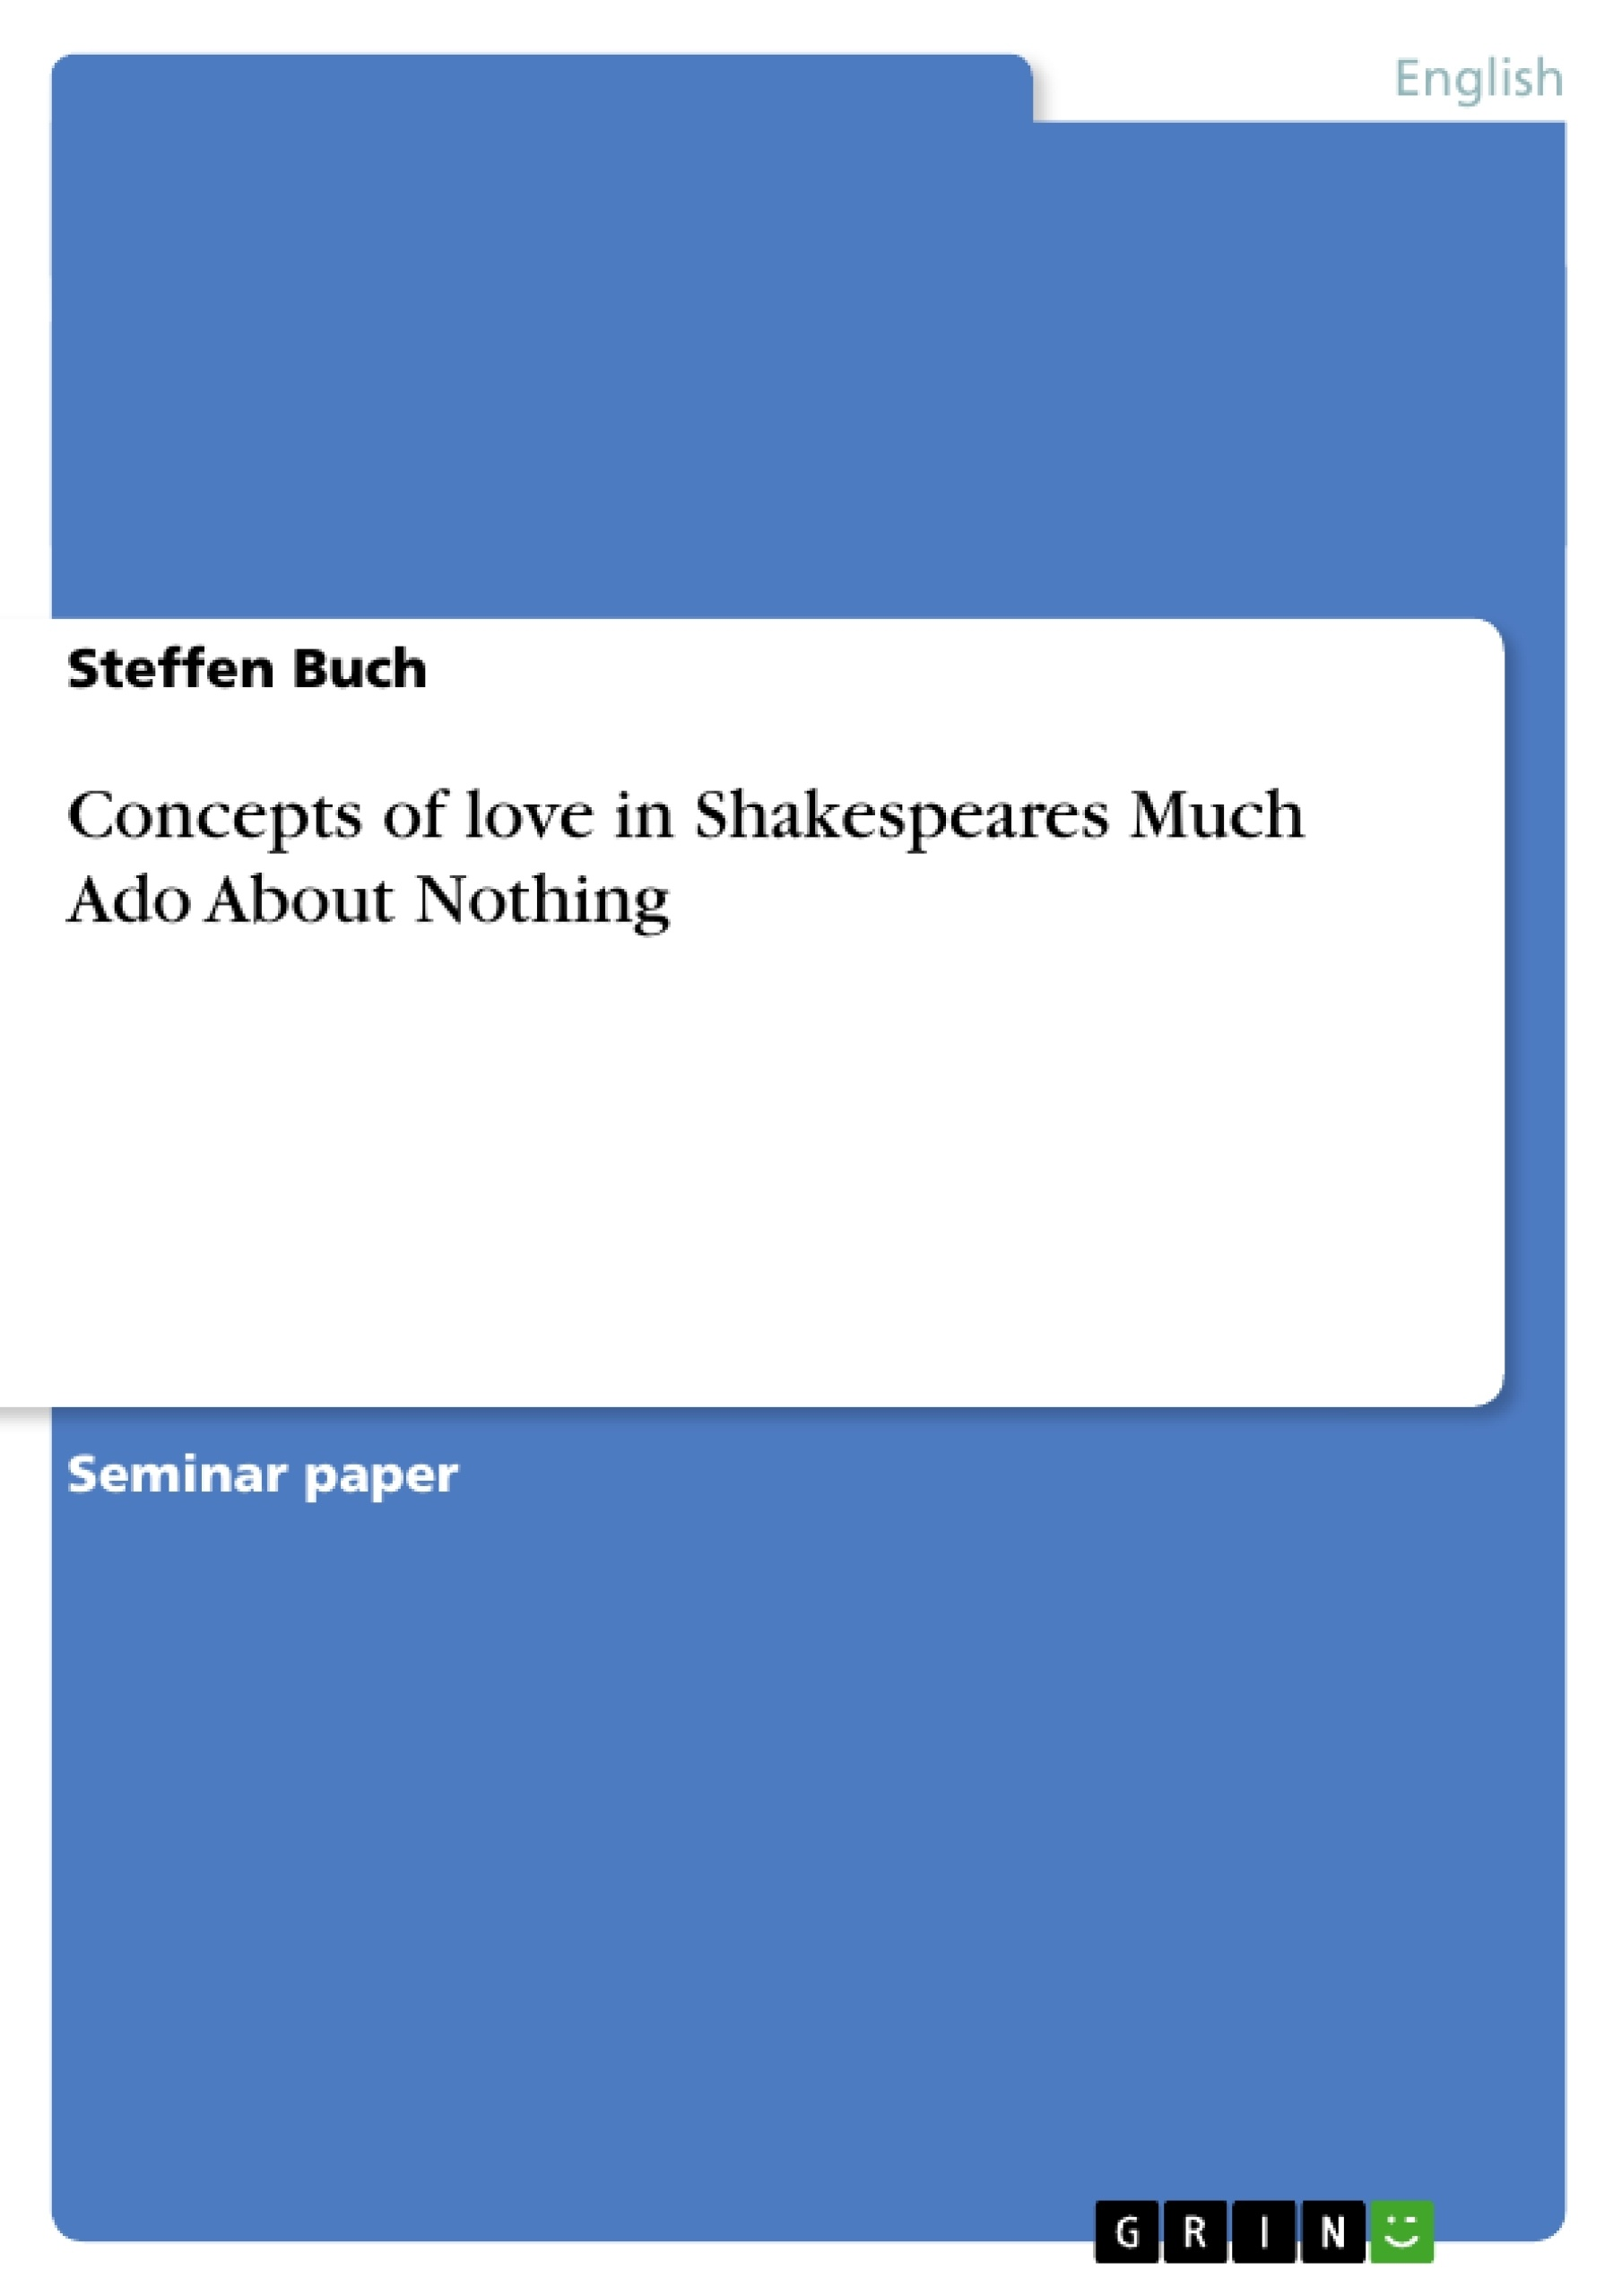 Title: Concepts of love in Shakespeares Much Ado About Nothing